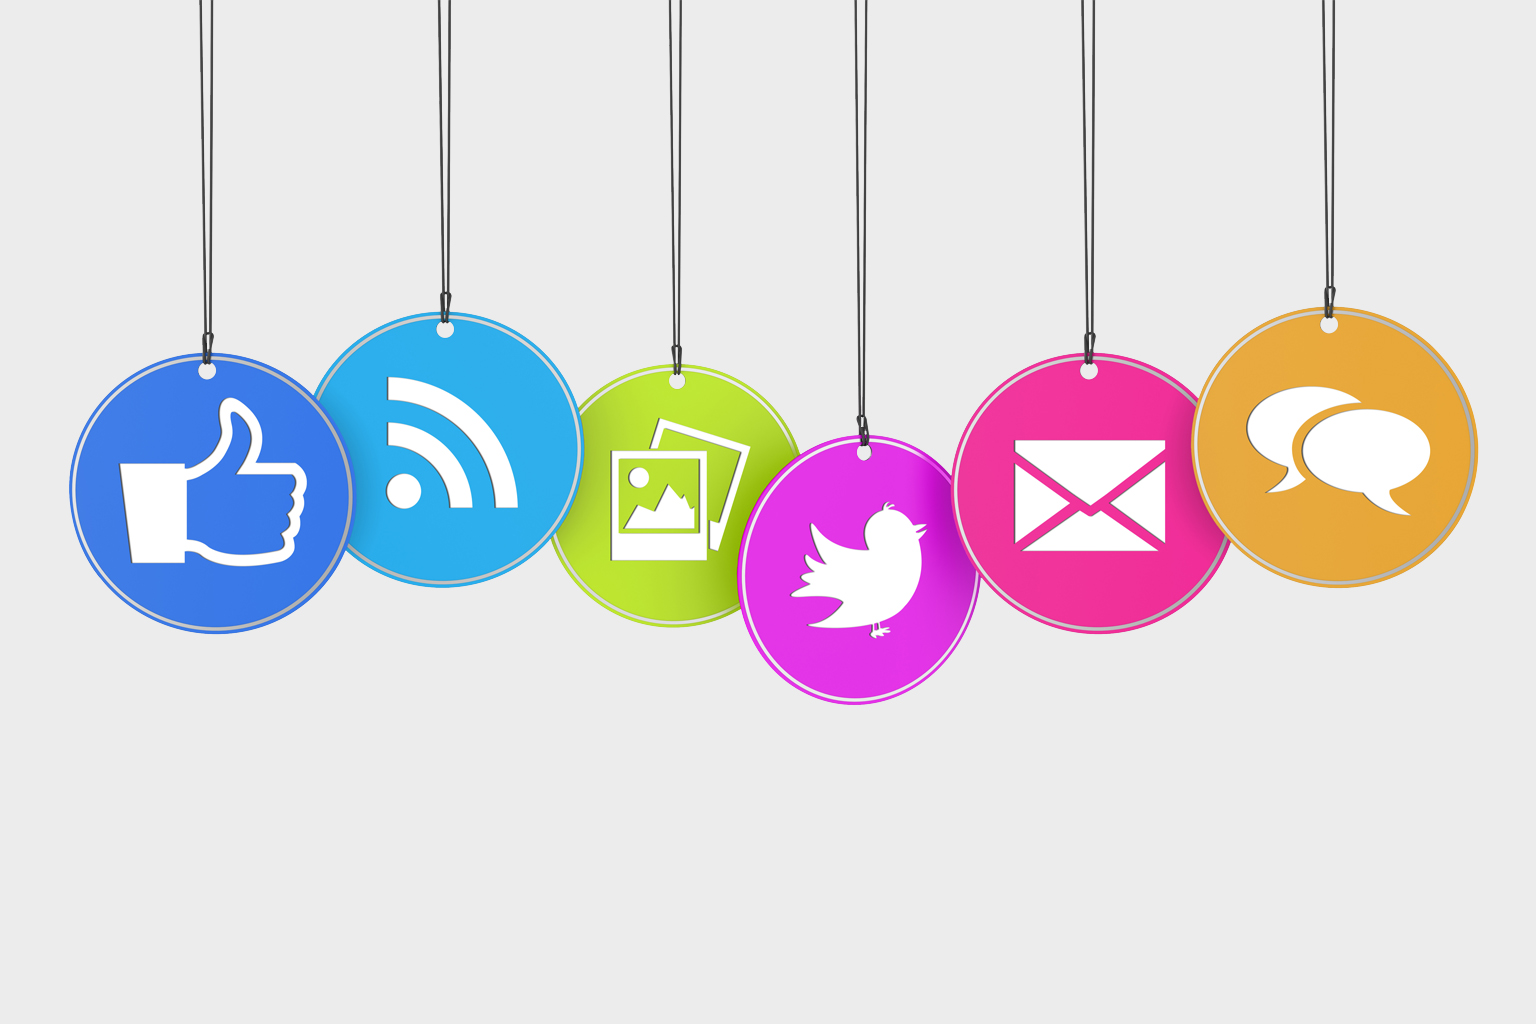 Colorful social media icons hanging from strings